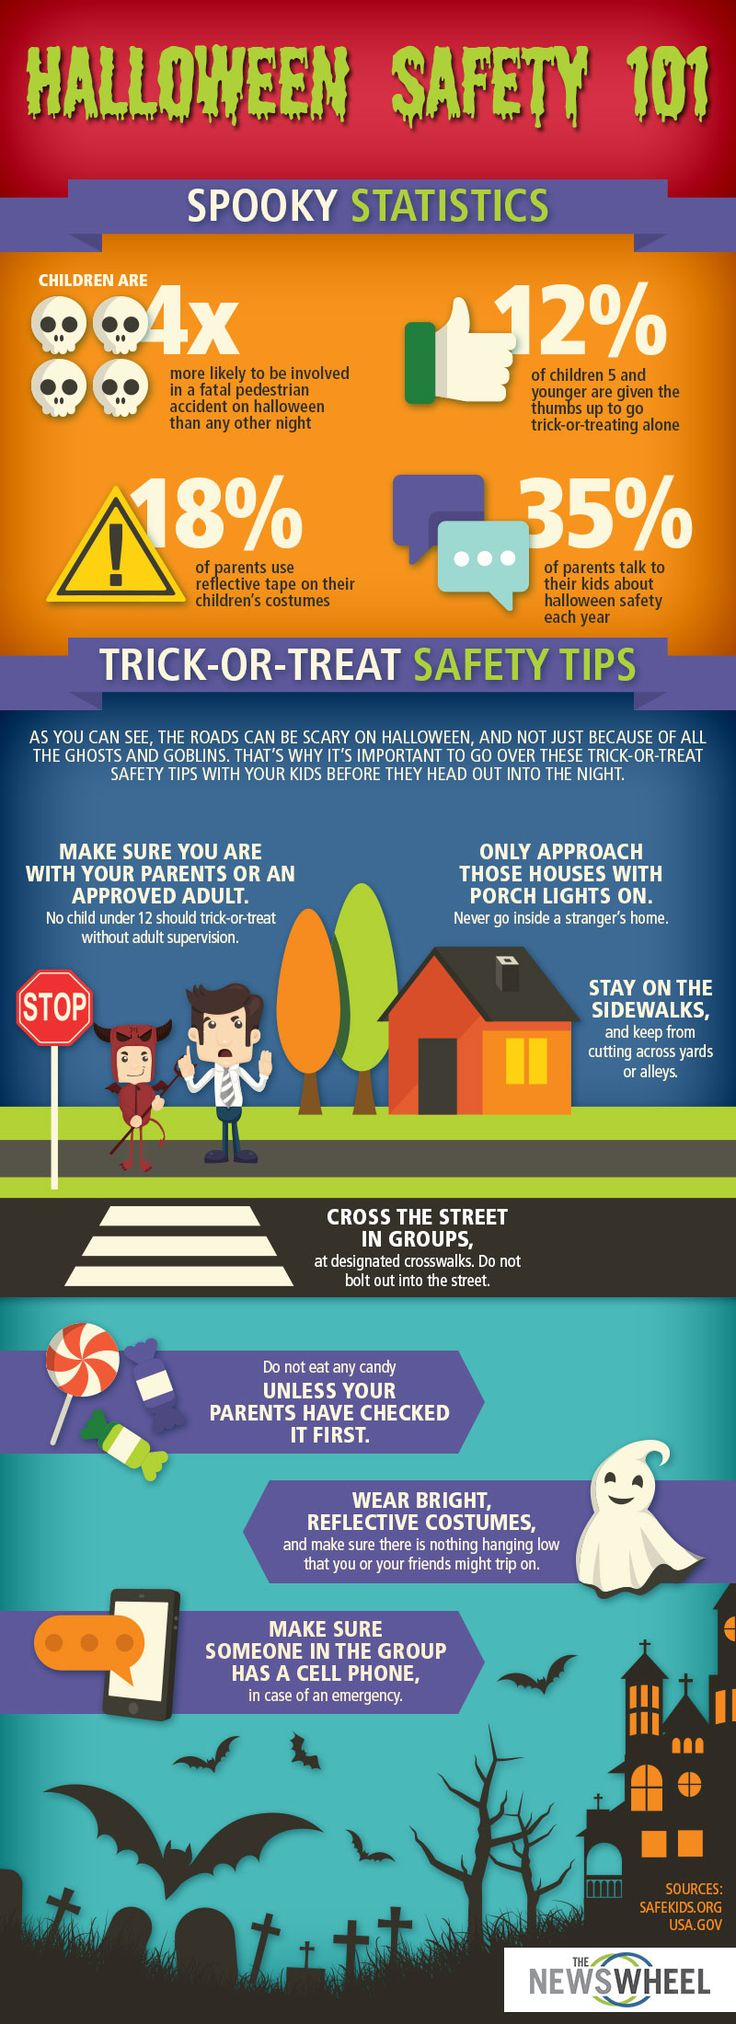 TrickorTreat Safety Infographic Keep Your Night Spooky